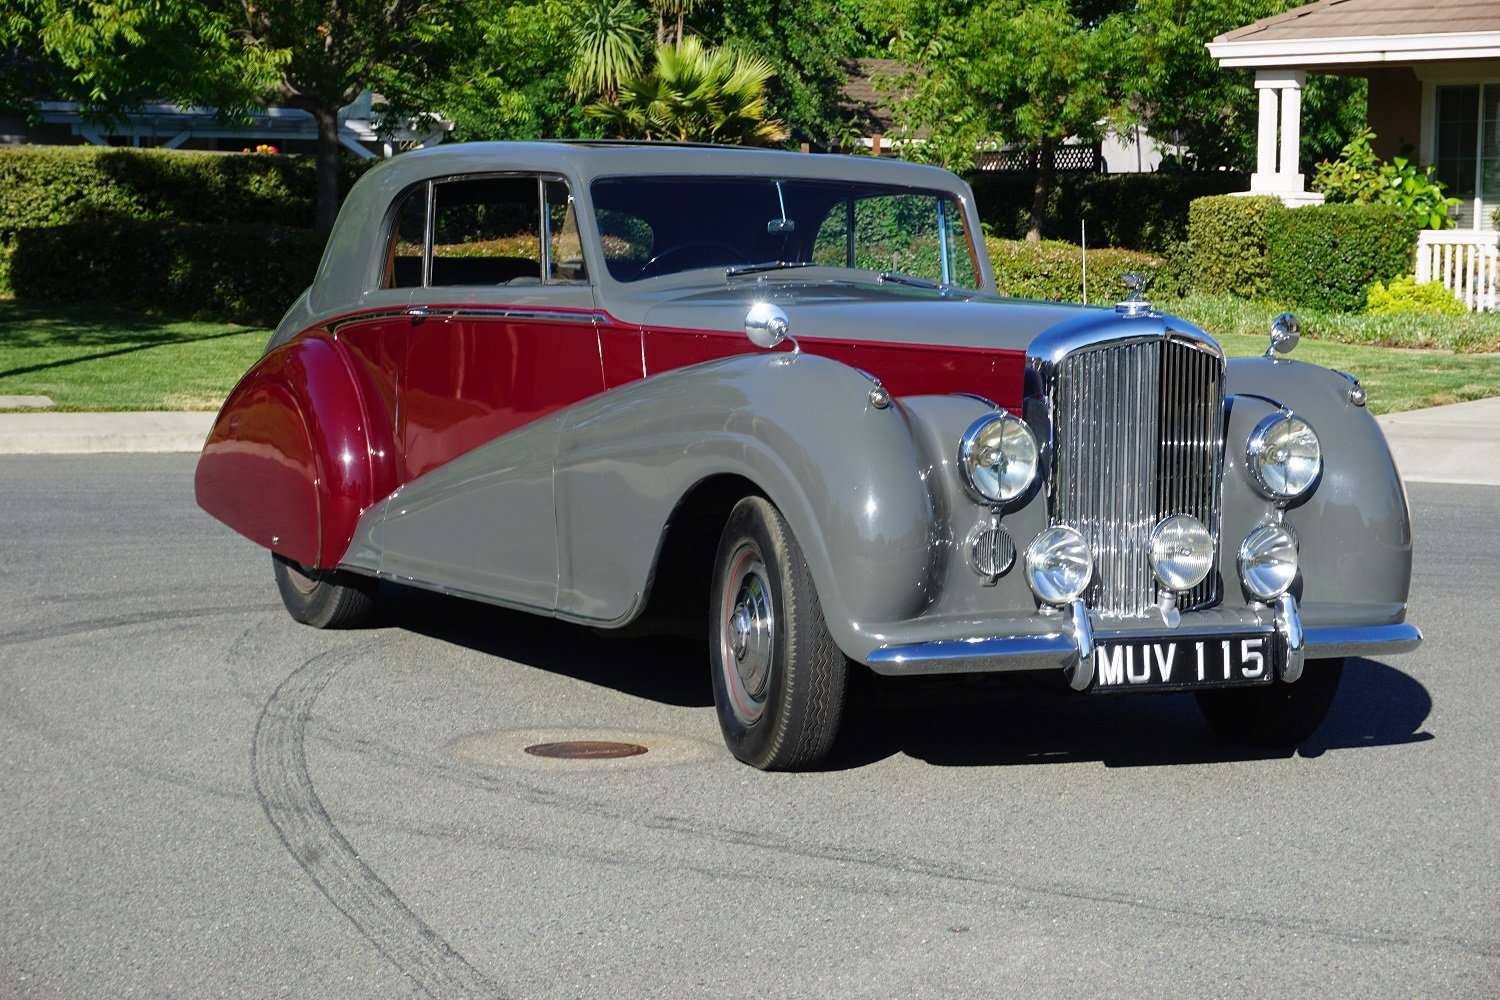 1951 Bentley Park Ward Coupe RHD #21863 For Sale (picture 1 of 6)